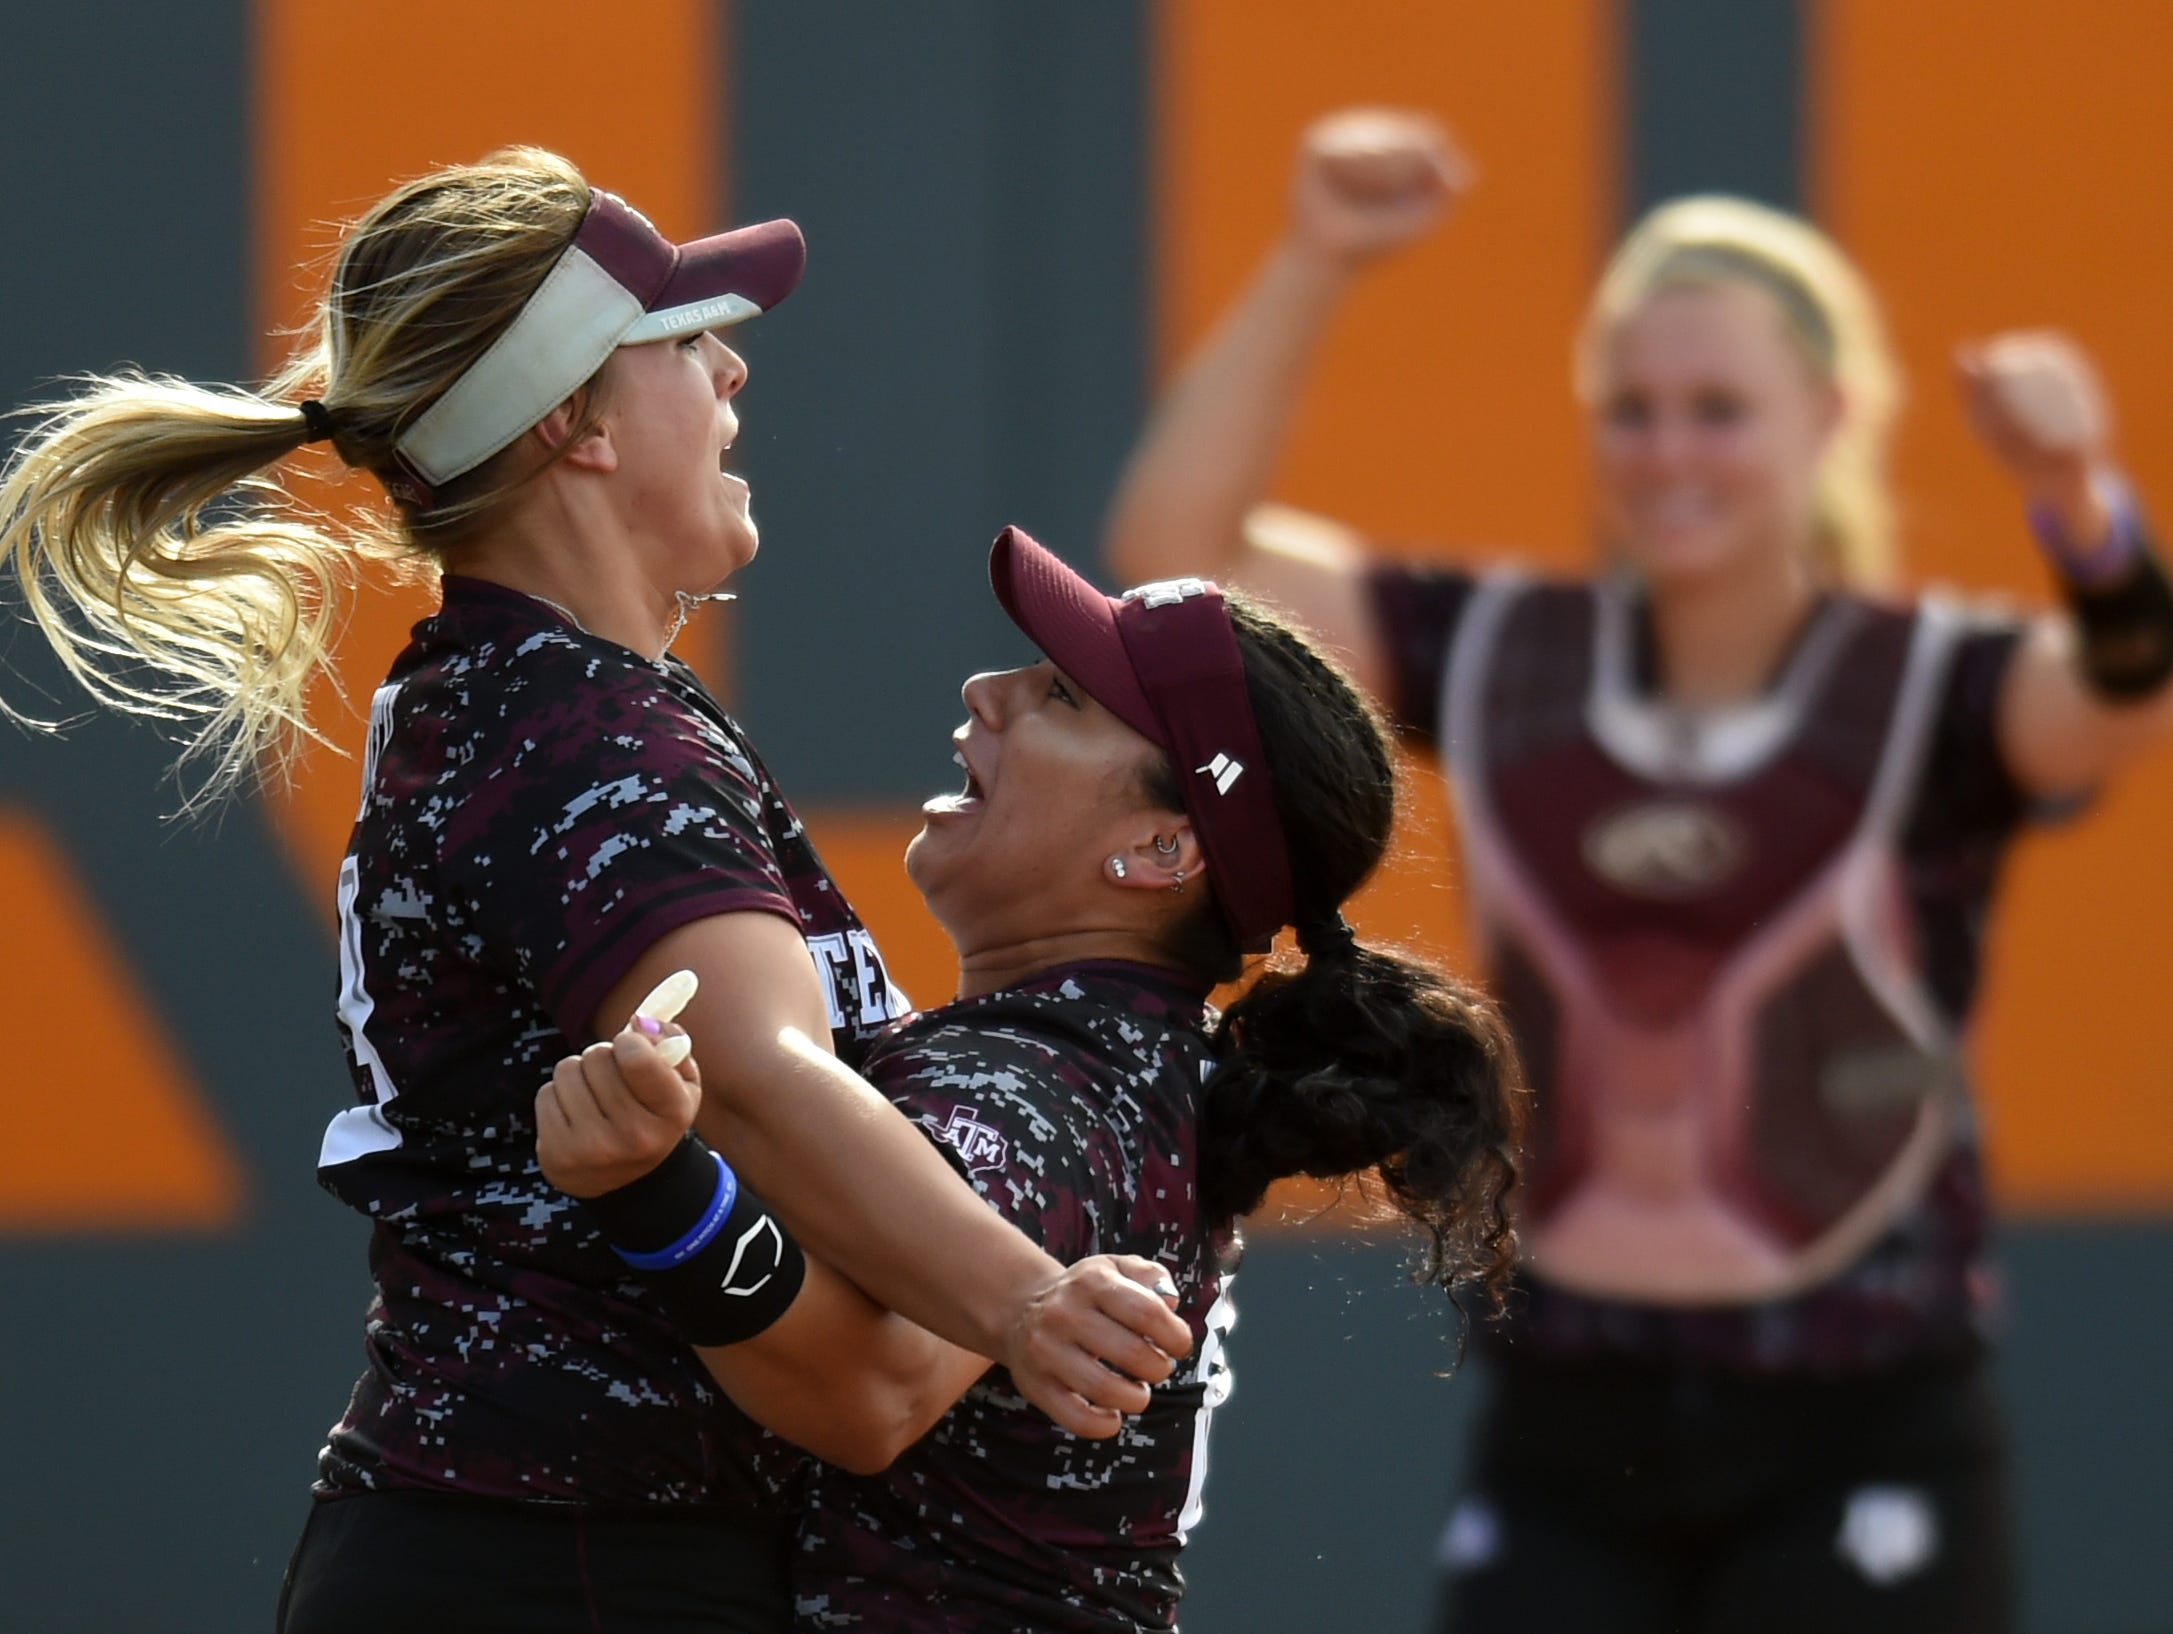 At left Texas A&M's Lexi Smith and Tori Vidales chest bump after winning an NCAA Super Regional game between Tennessee and Texas A&M at Sherri Parker Lee Stadium on Sunday, May 28, 2017. Texas A&M defeated Tennessee 5-3, and will head to Oklahoma City for the NCAA Women's College World Series.